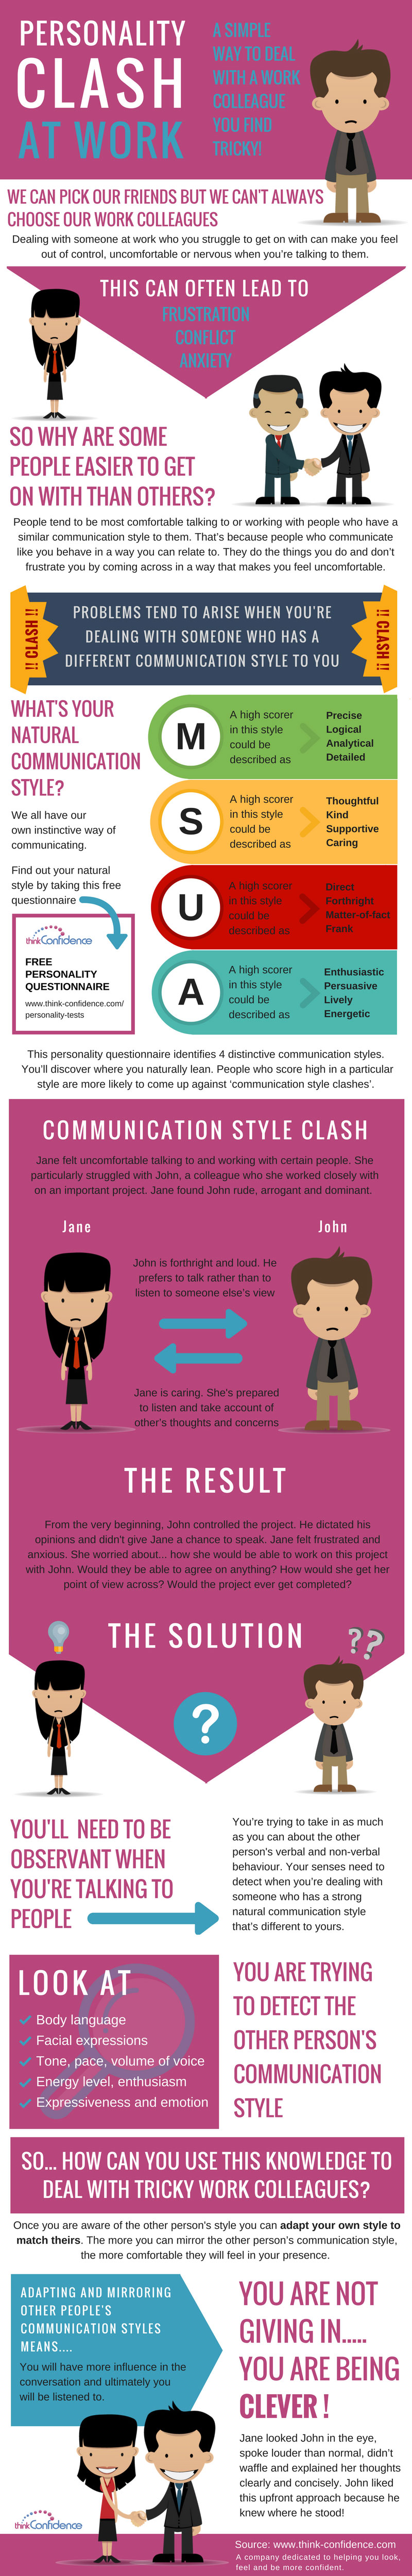 Personality Clashes at Work? Check Your Communication Style - Infographic